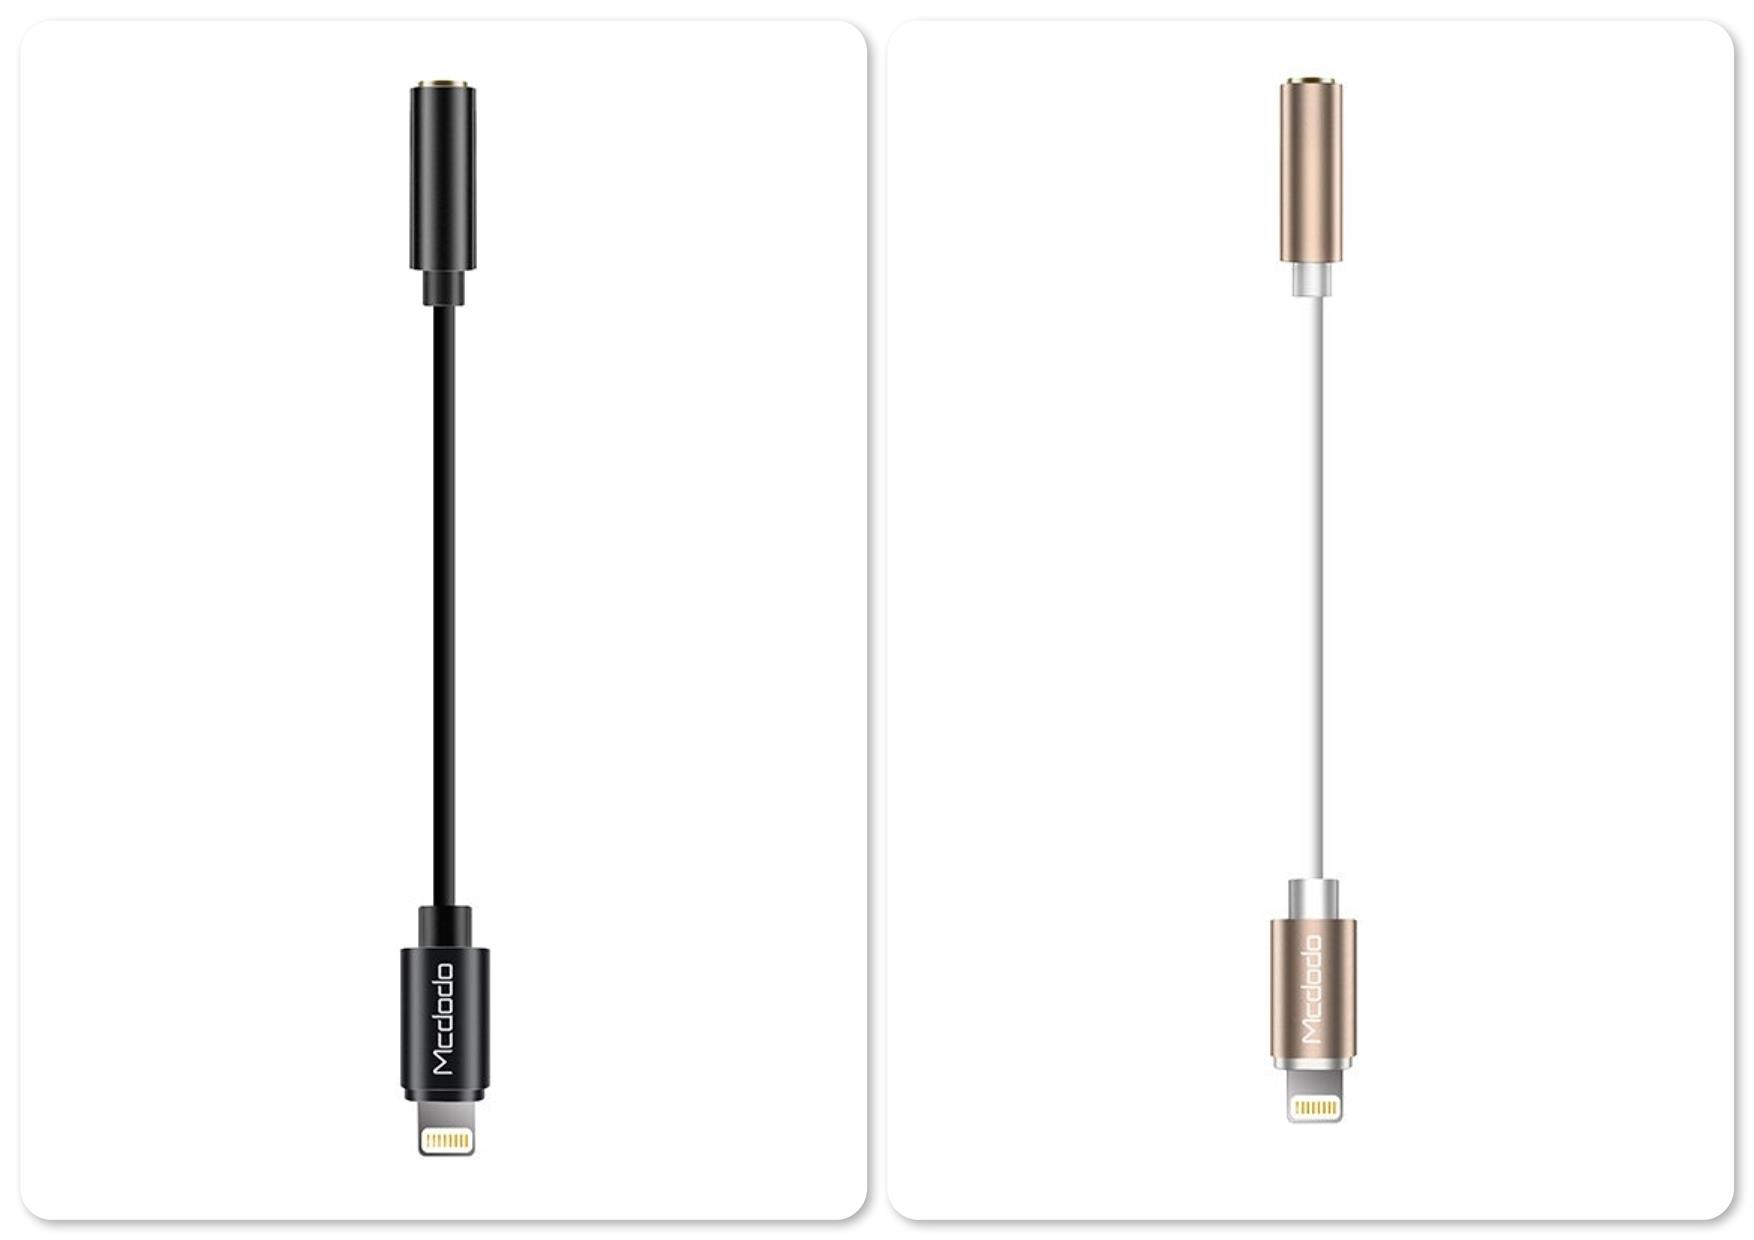 Mcdodo CA-306 Lightning to DC 3.5mm Jack Audio Cable